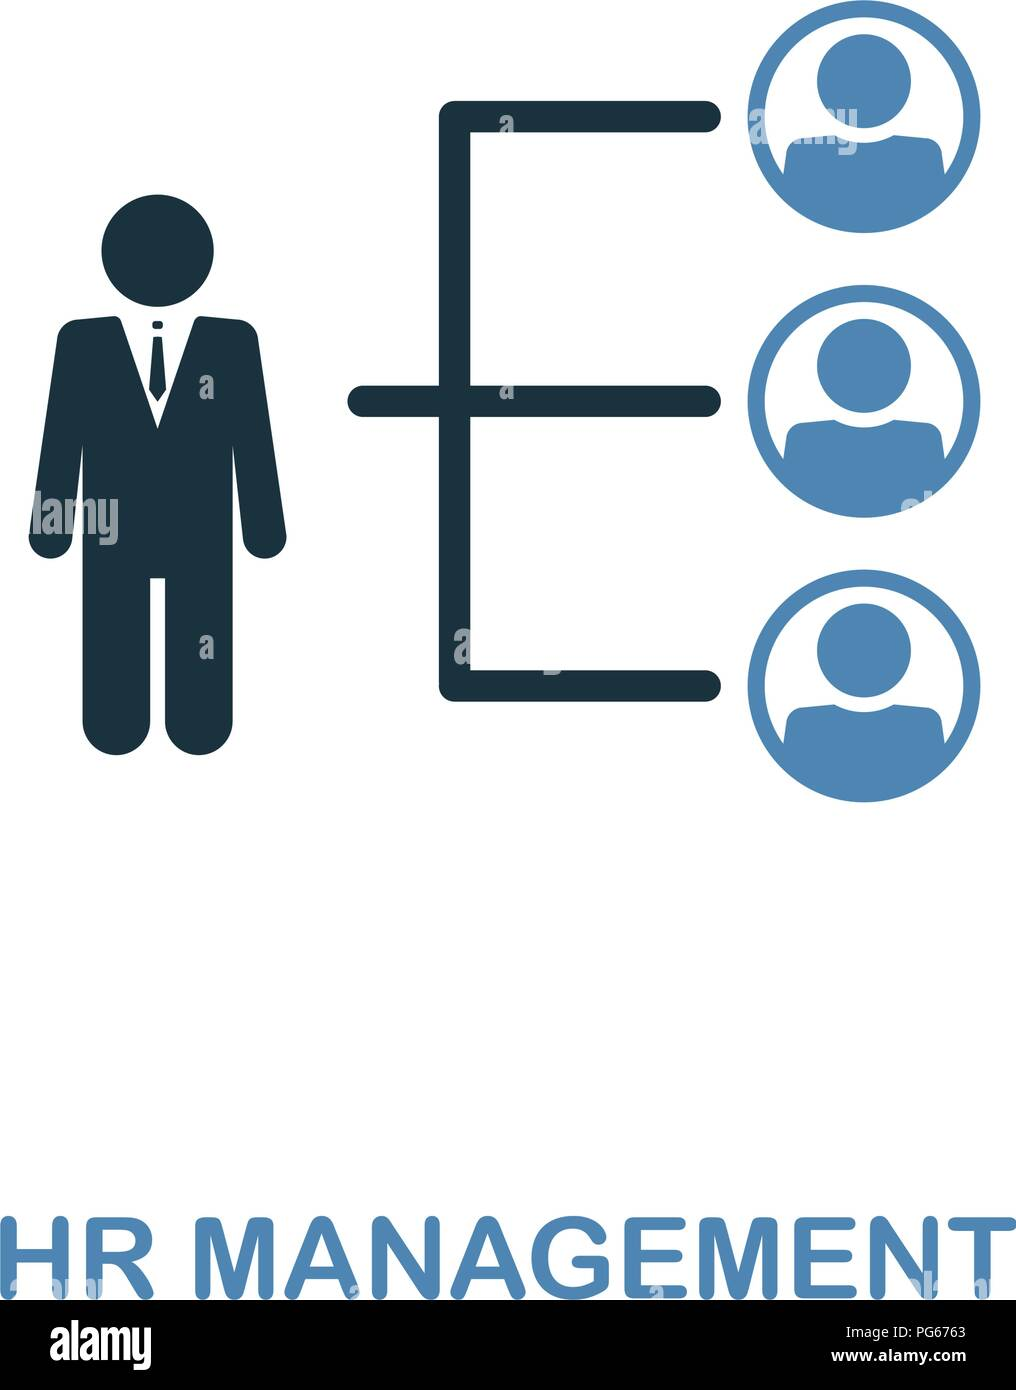 human resource management stock vector images